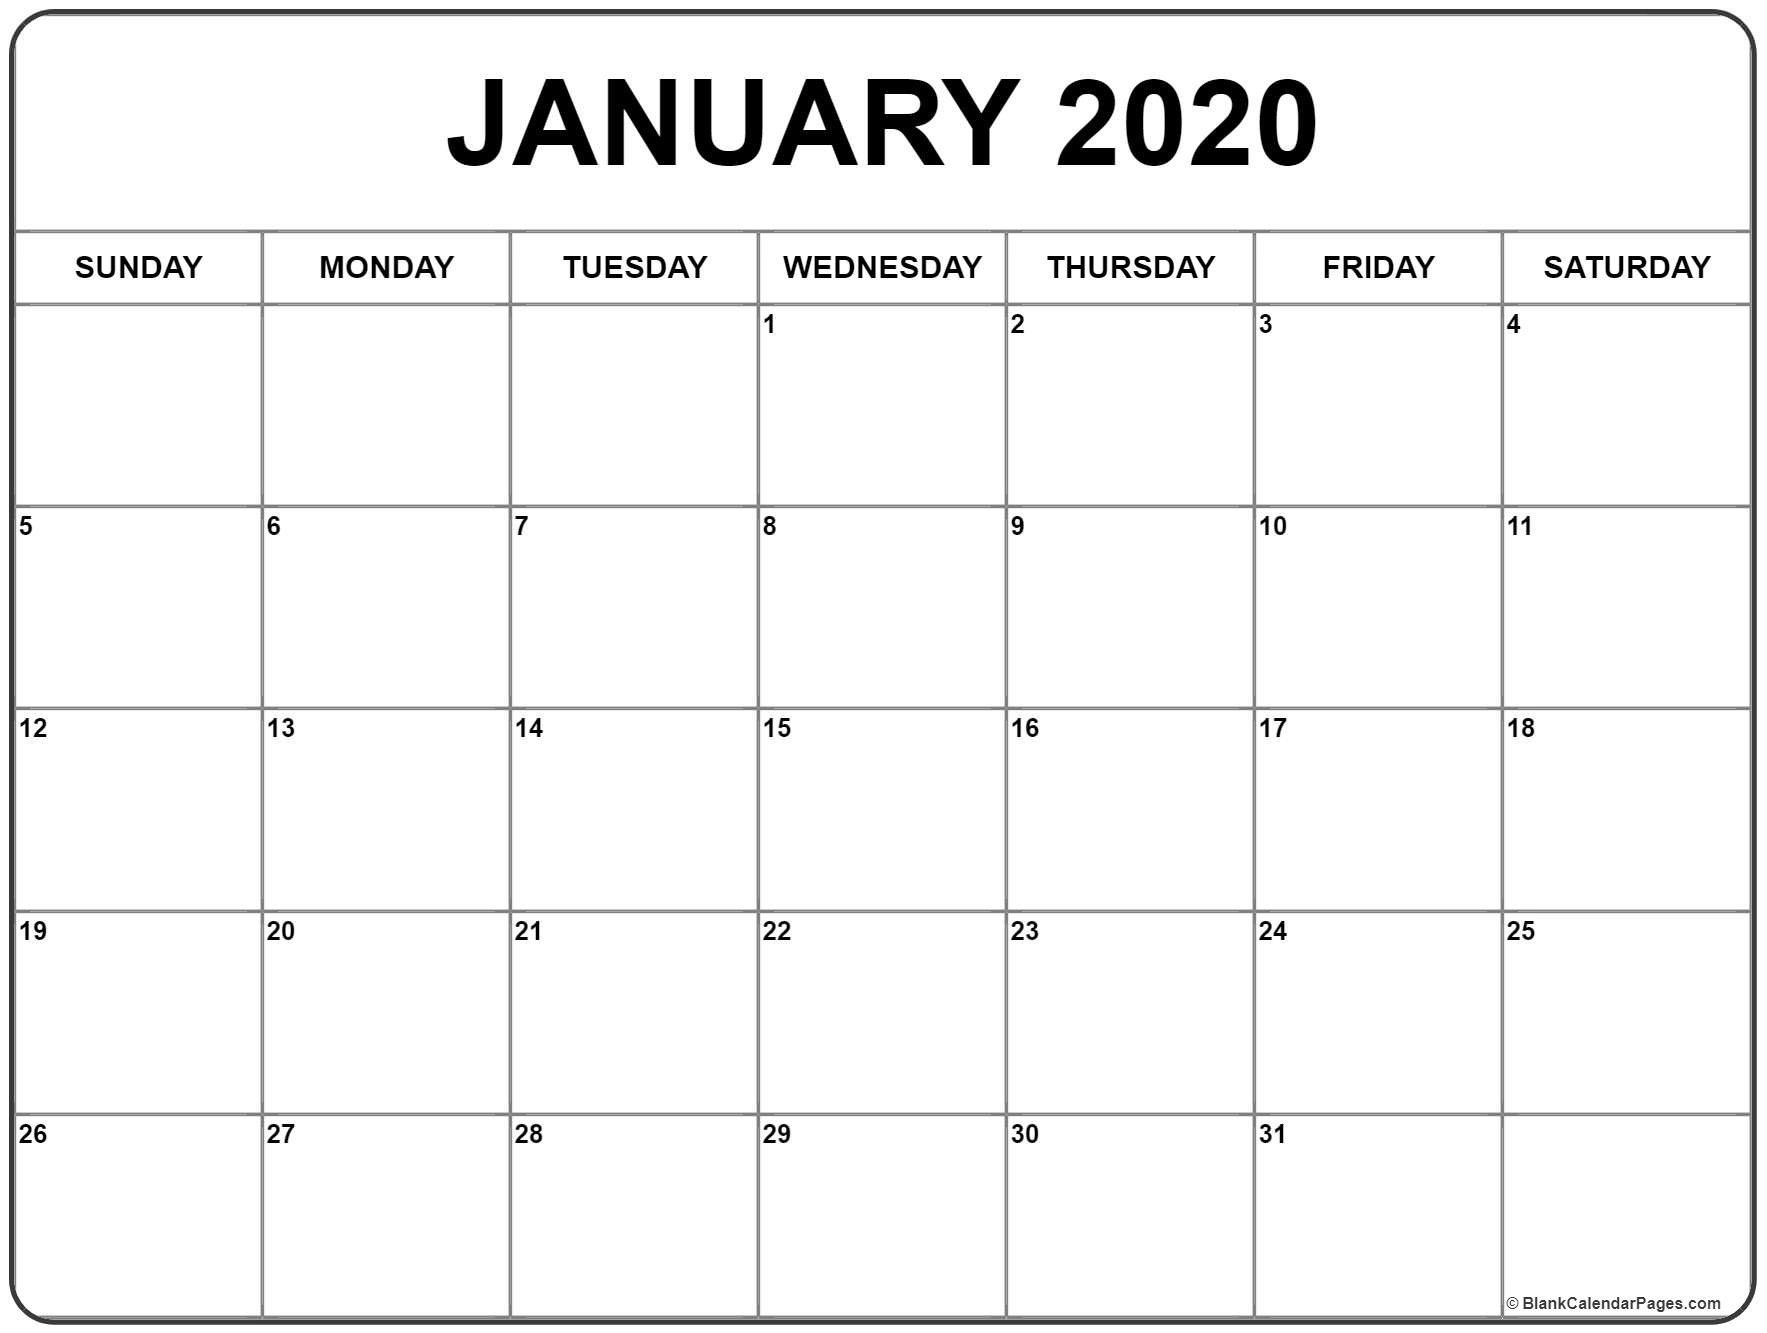 January 2020 Calendar 56 Templates Of 2020 Printable January with Monthly Fill In Calendar 2020